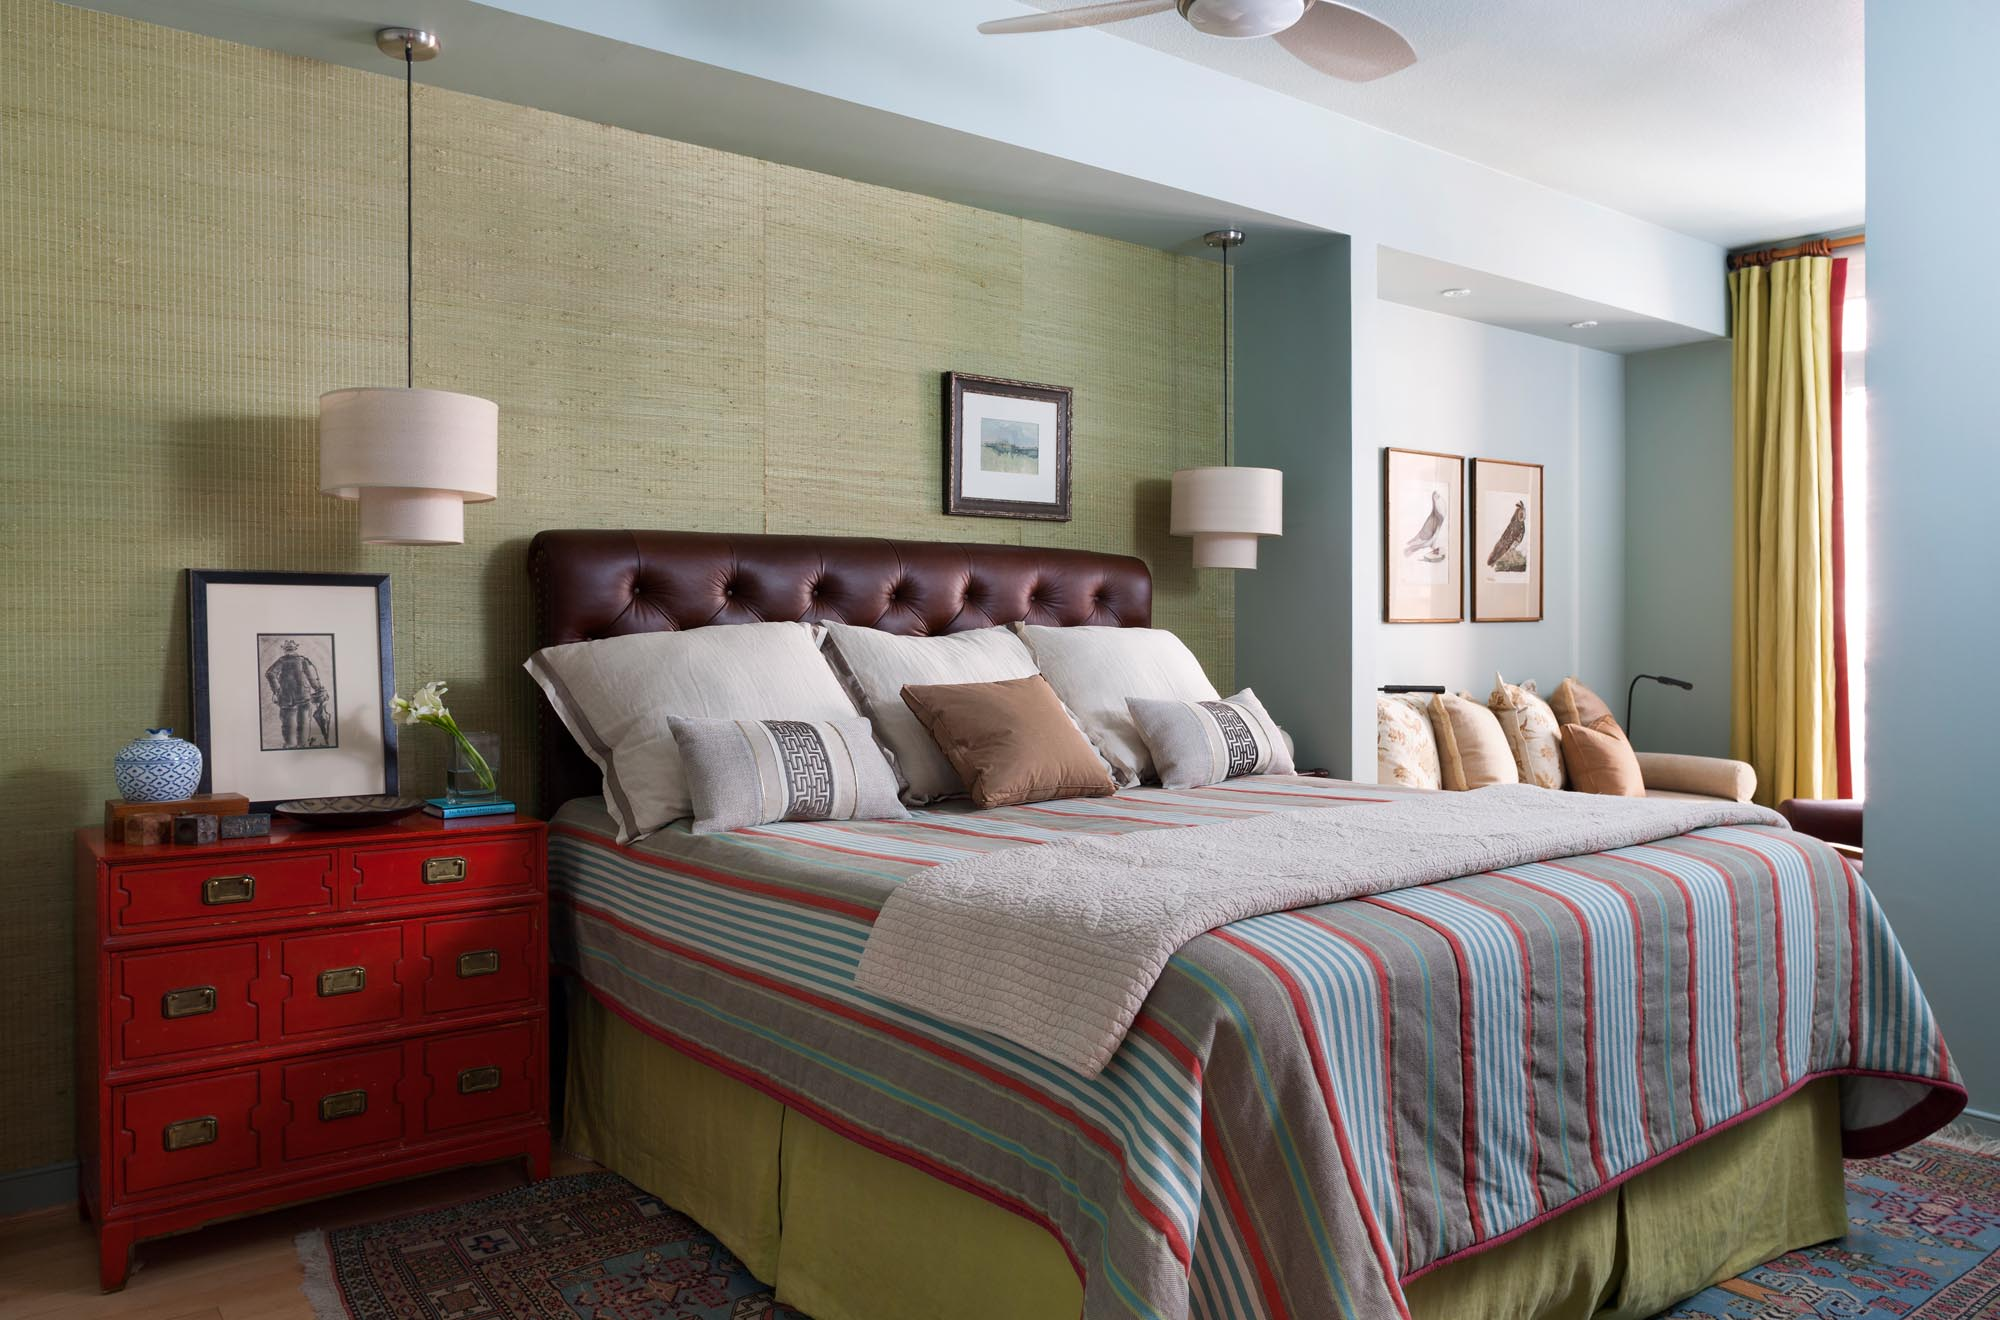 Boston master bedroom interior design by Dane Austin Design